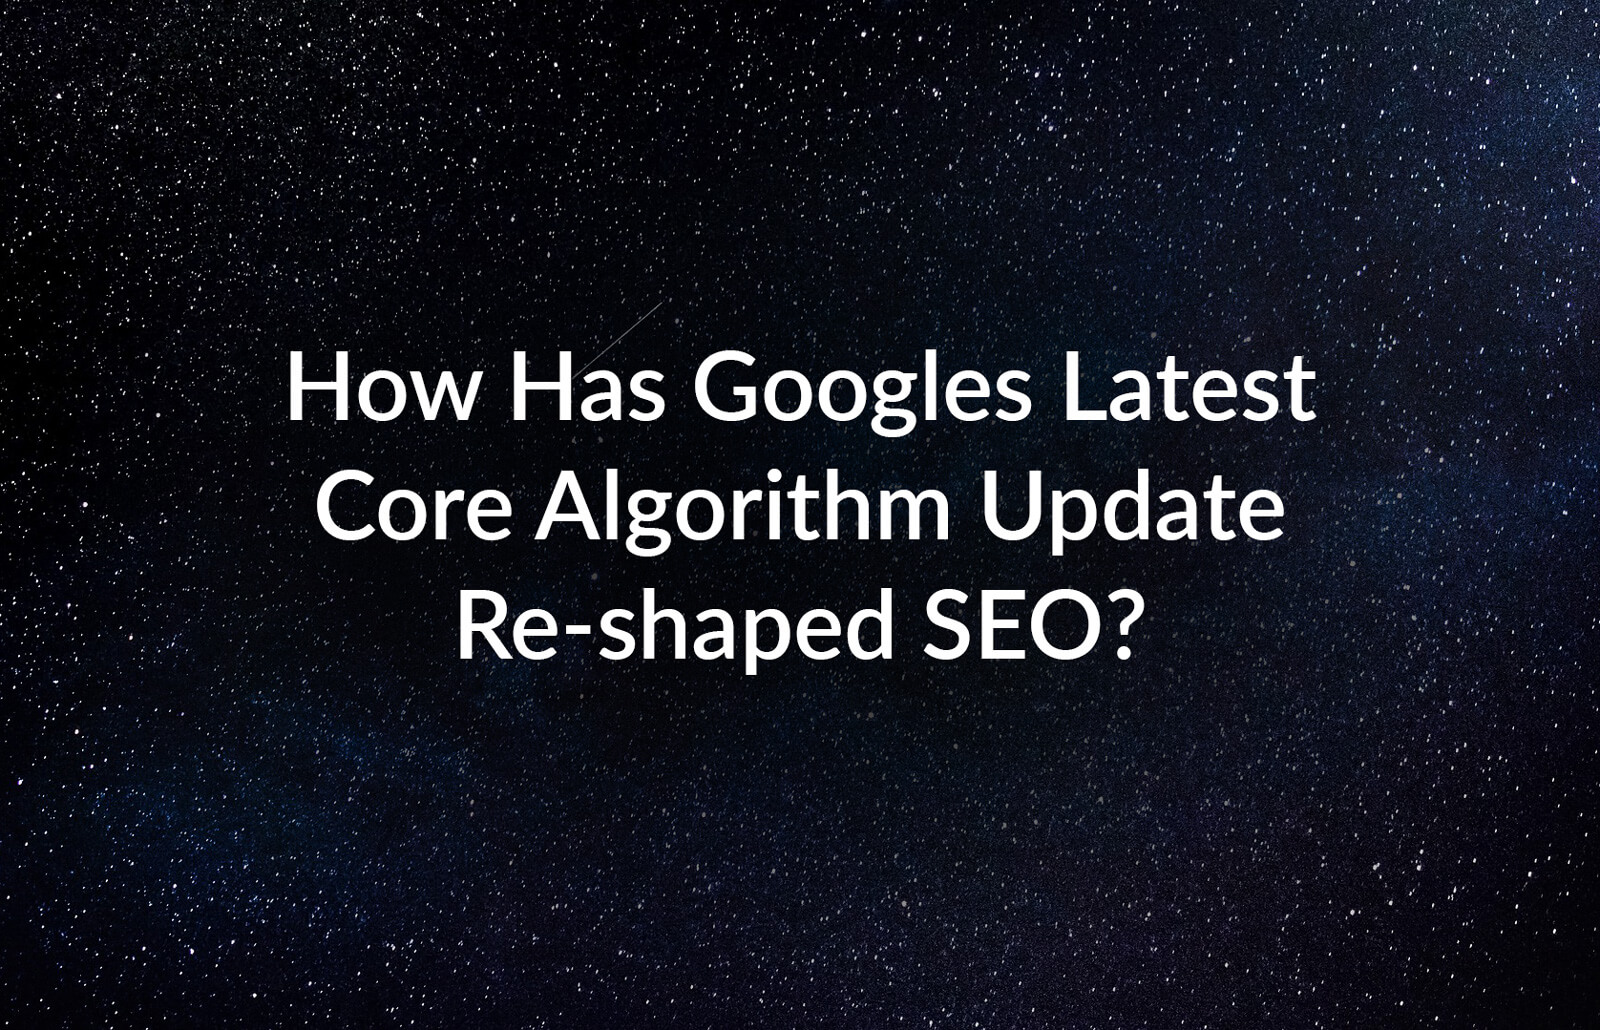 How-has-Googles-latest-core-algorithm-update-re-shaped-SEO_V3